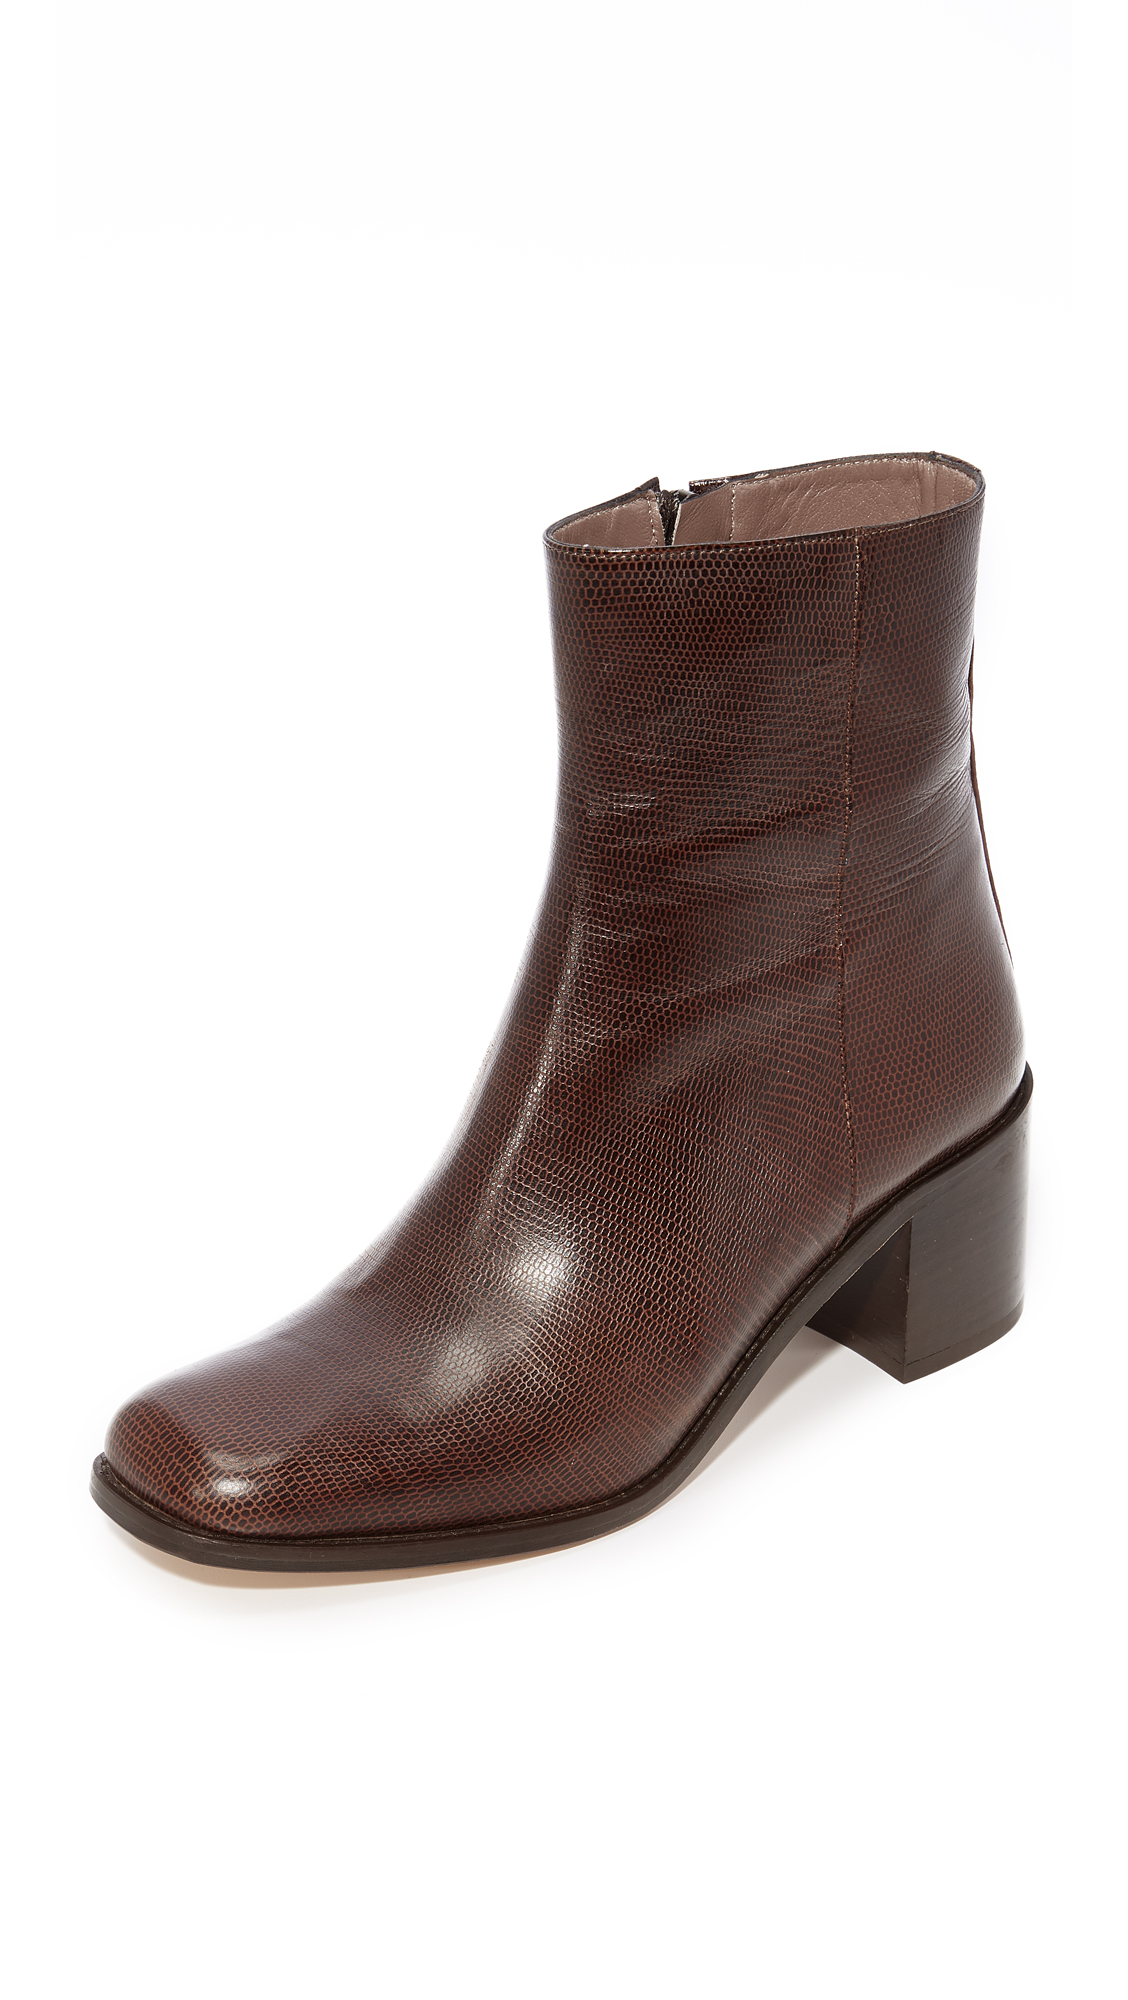 Maryam Nassir Zadeh Fiorenza Ankle Booties - Brown